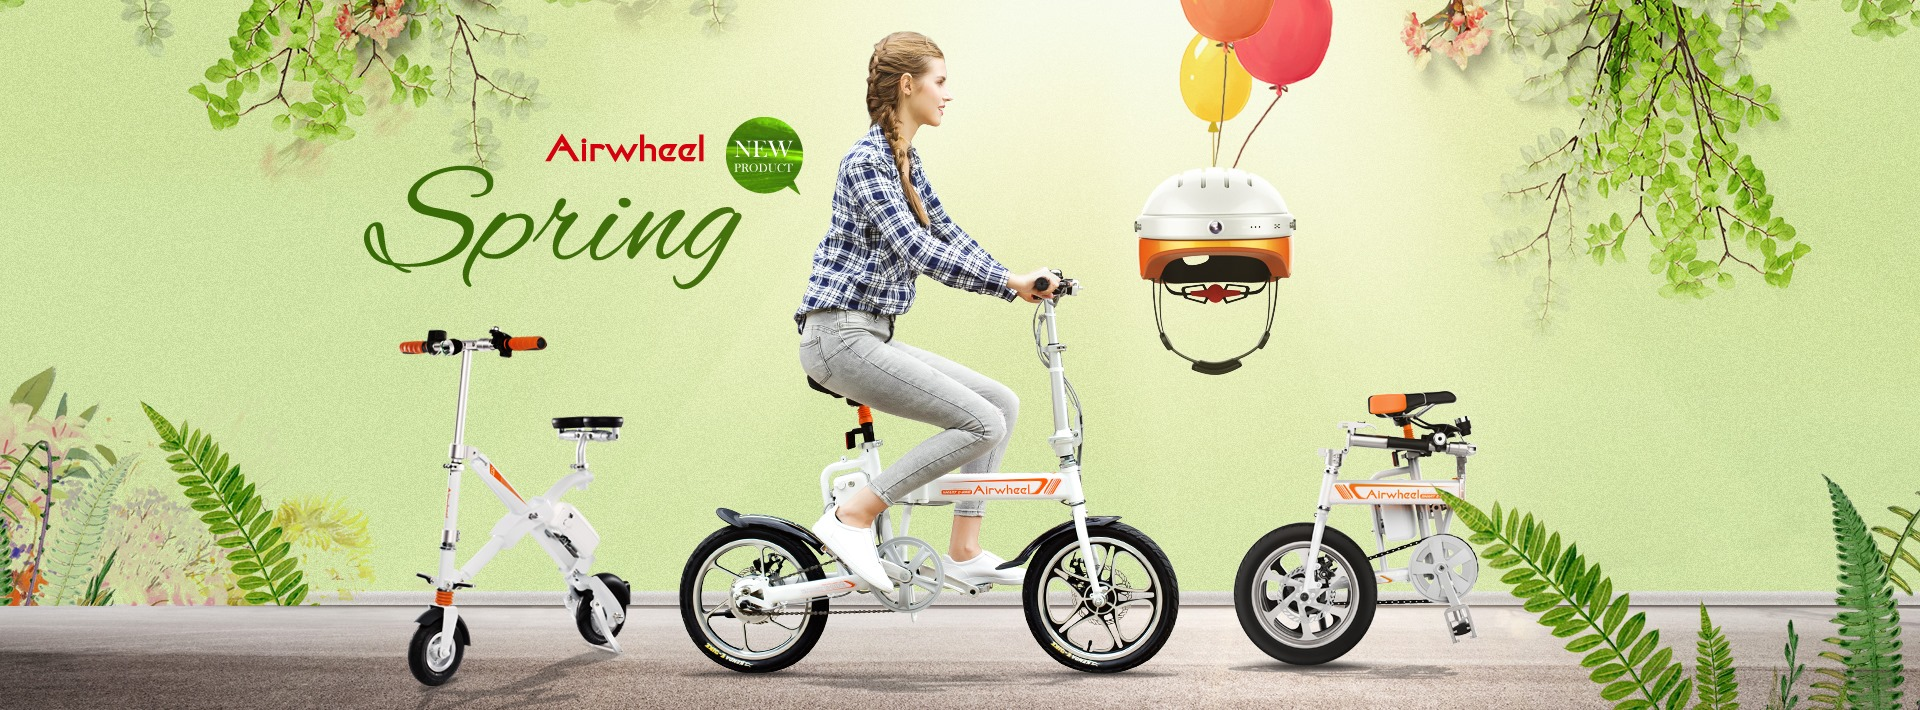 Airwheel smart ebike